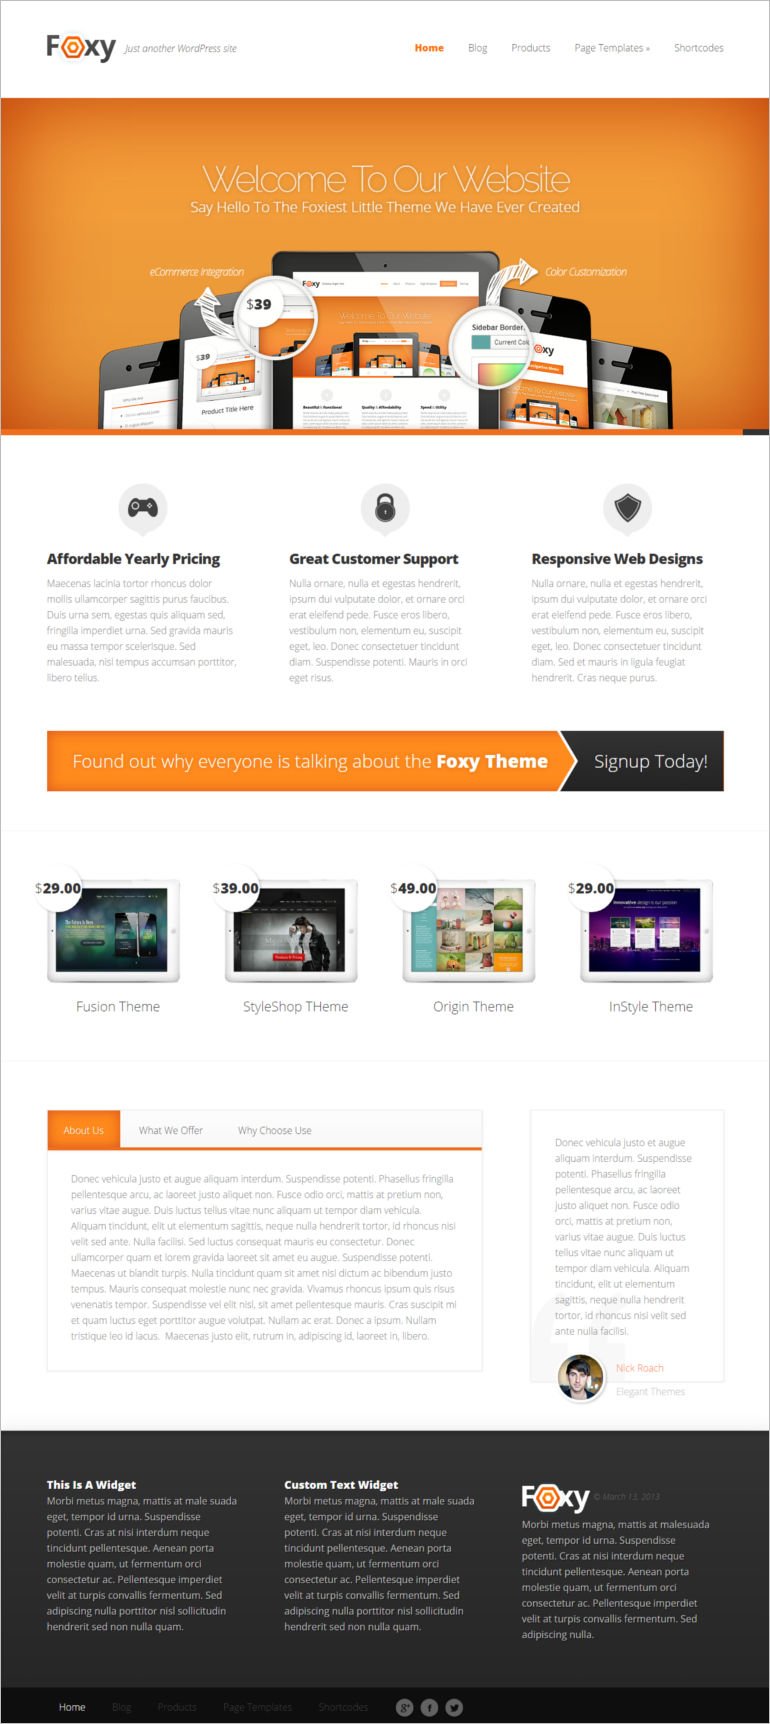 foxy-is-a-sleek-wordpress-theme